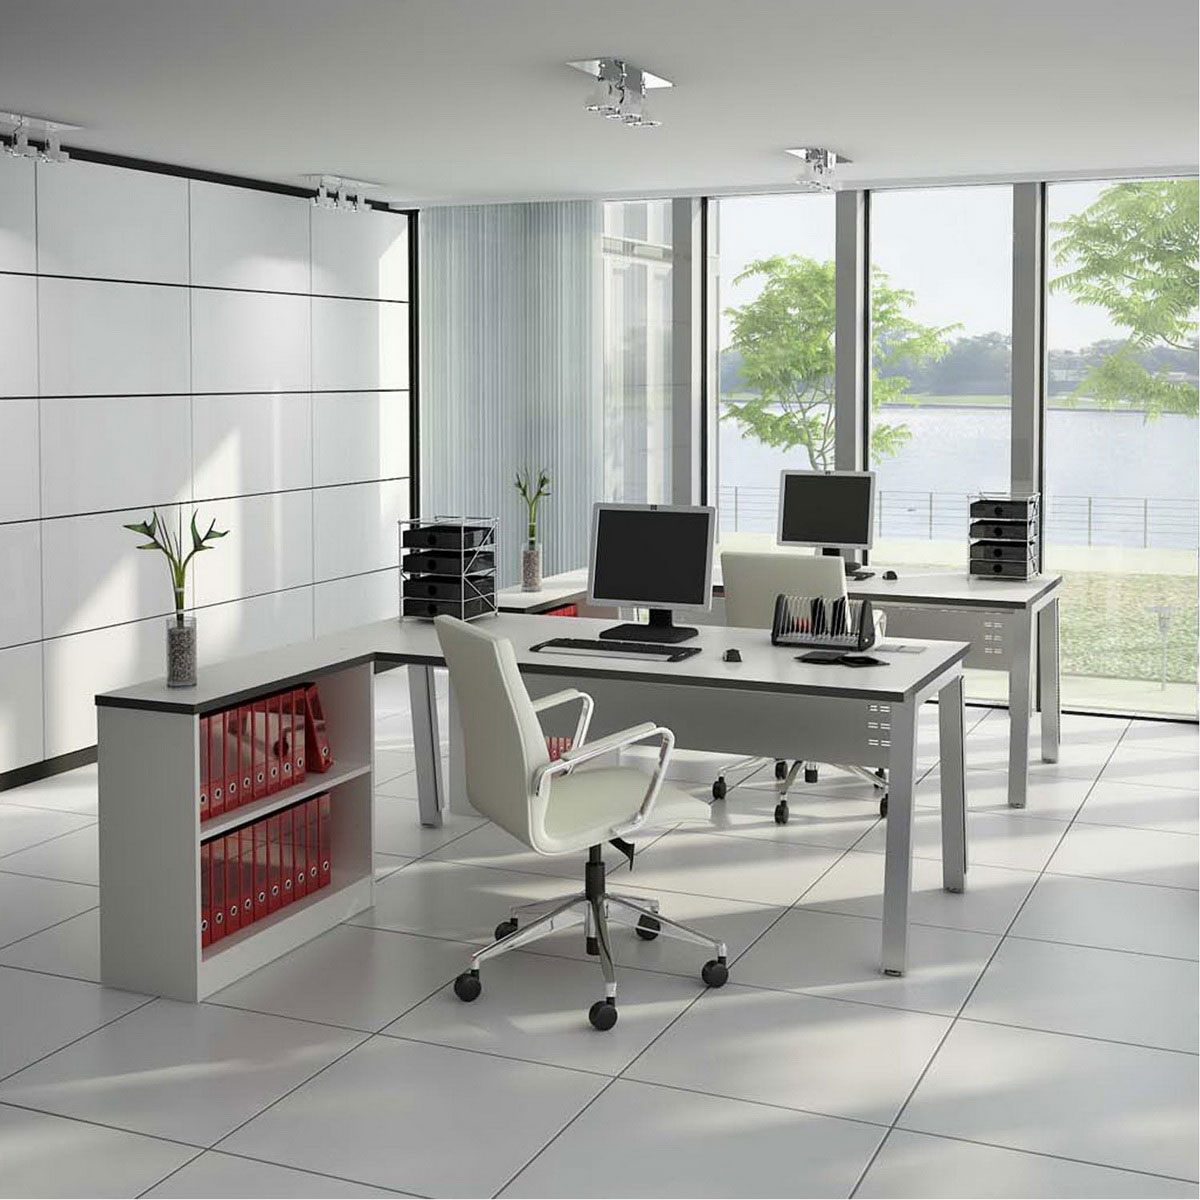 Office interior design dreams house furniture for Office design room